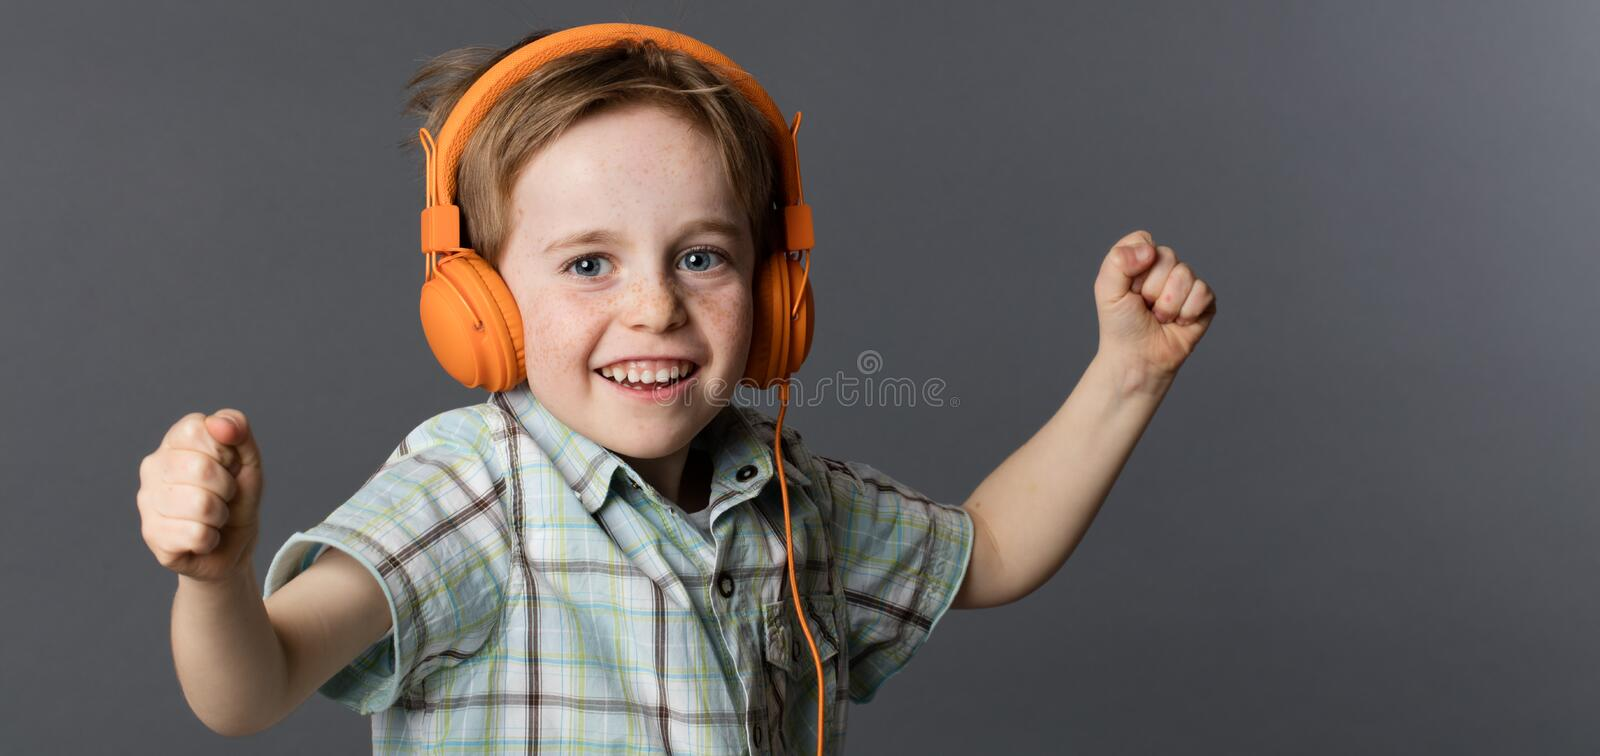 Giggling young boy dancing with winning arms listening to music royalty free stock images